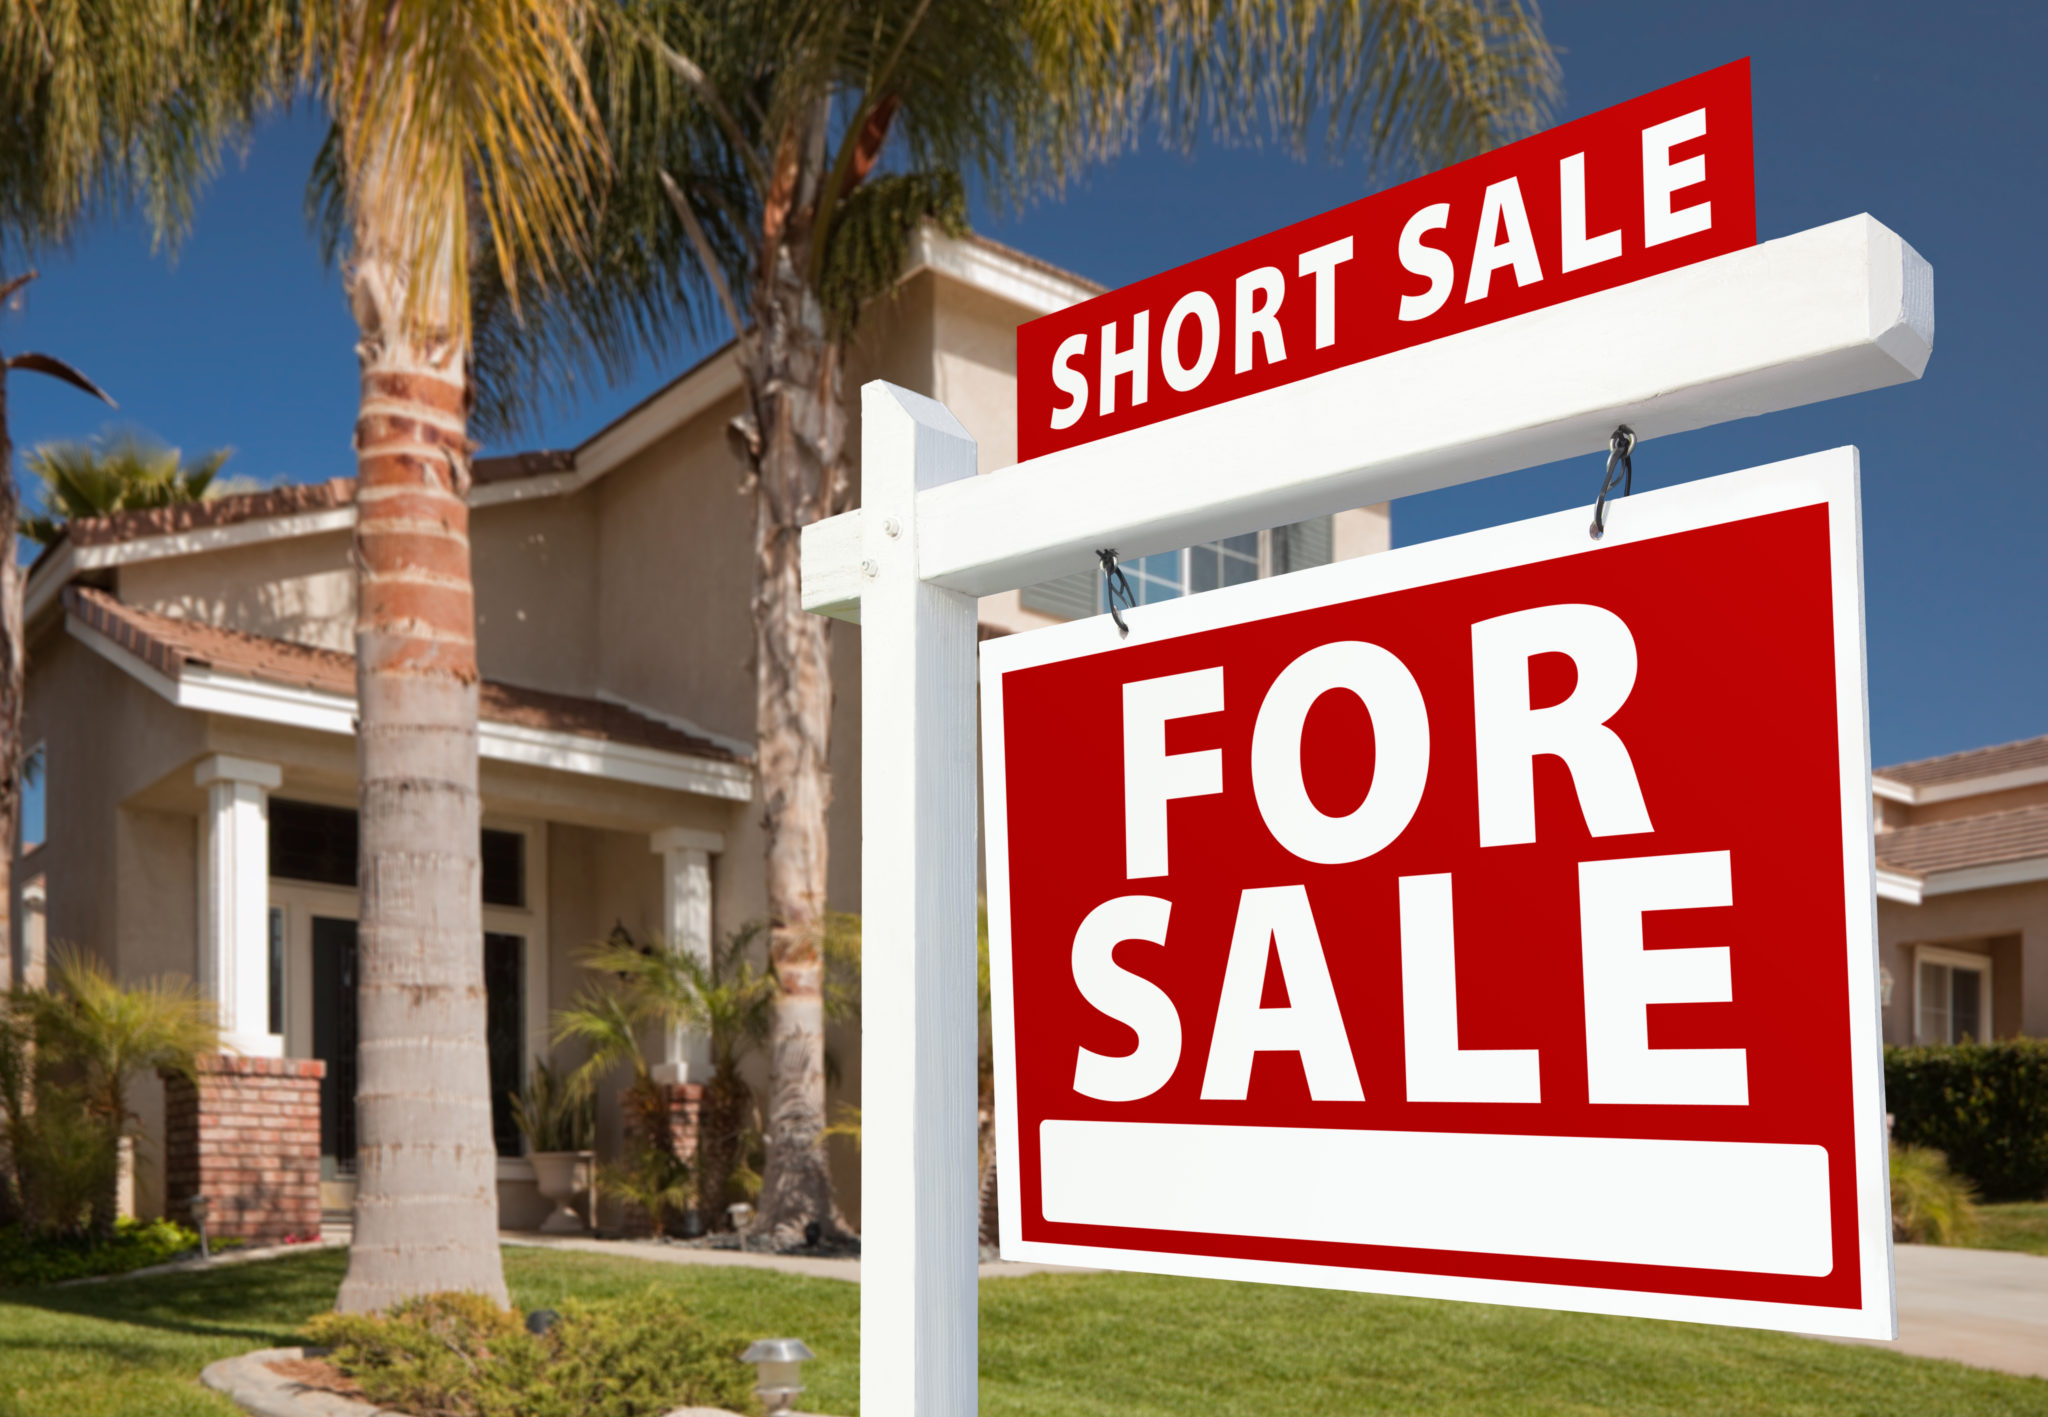 Pursue short sale before deed-in-lieu